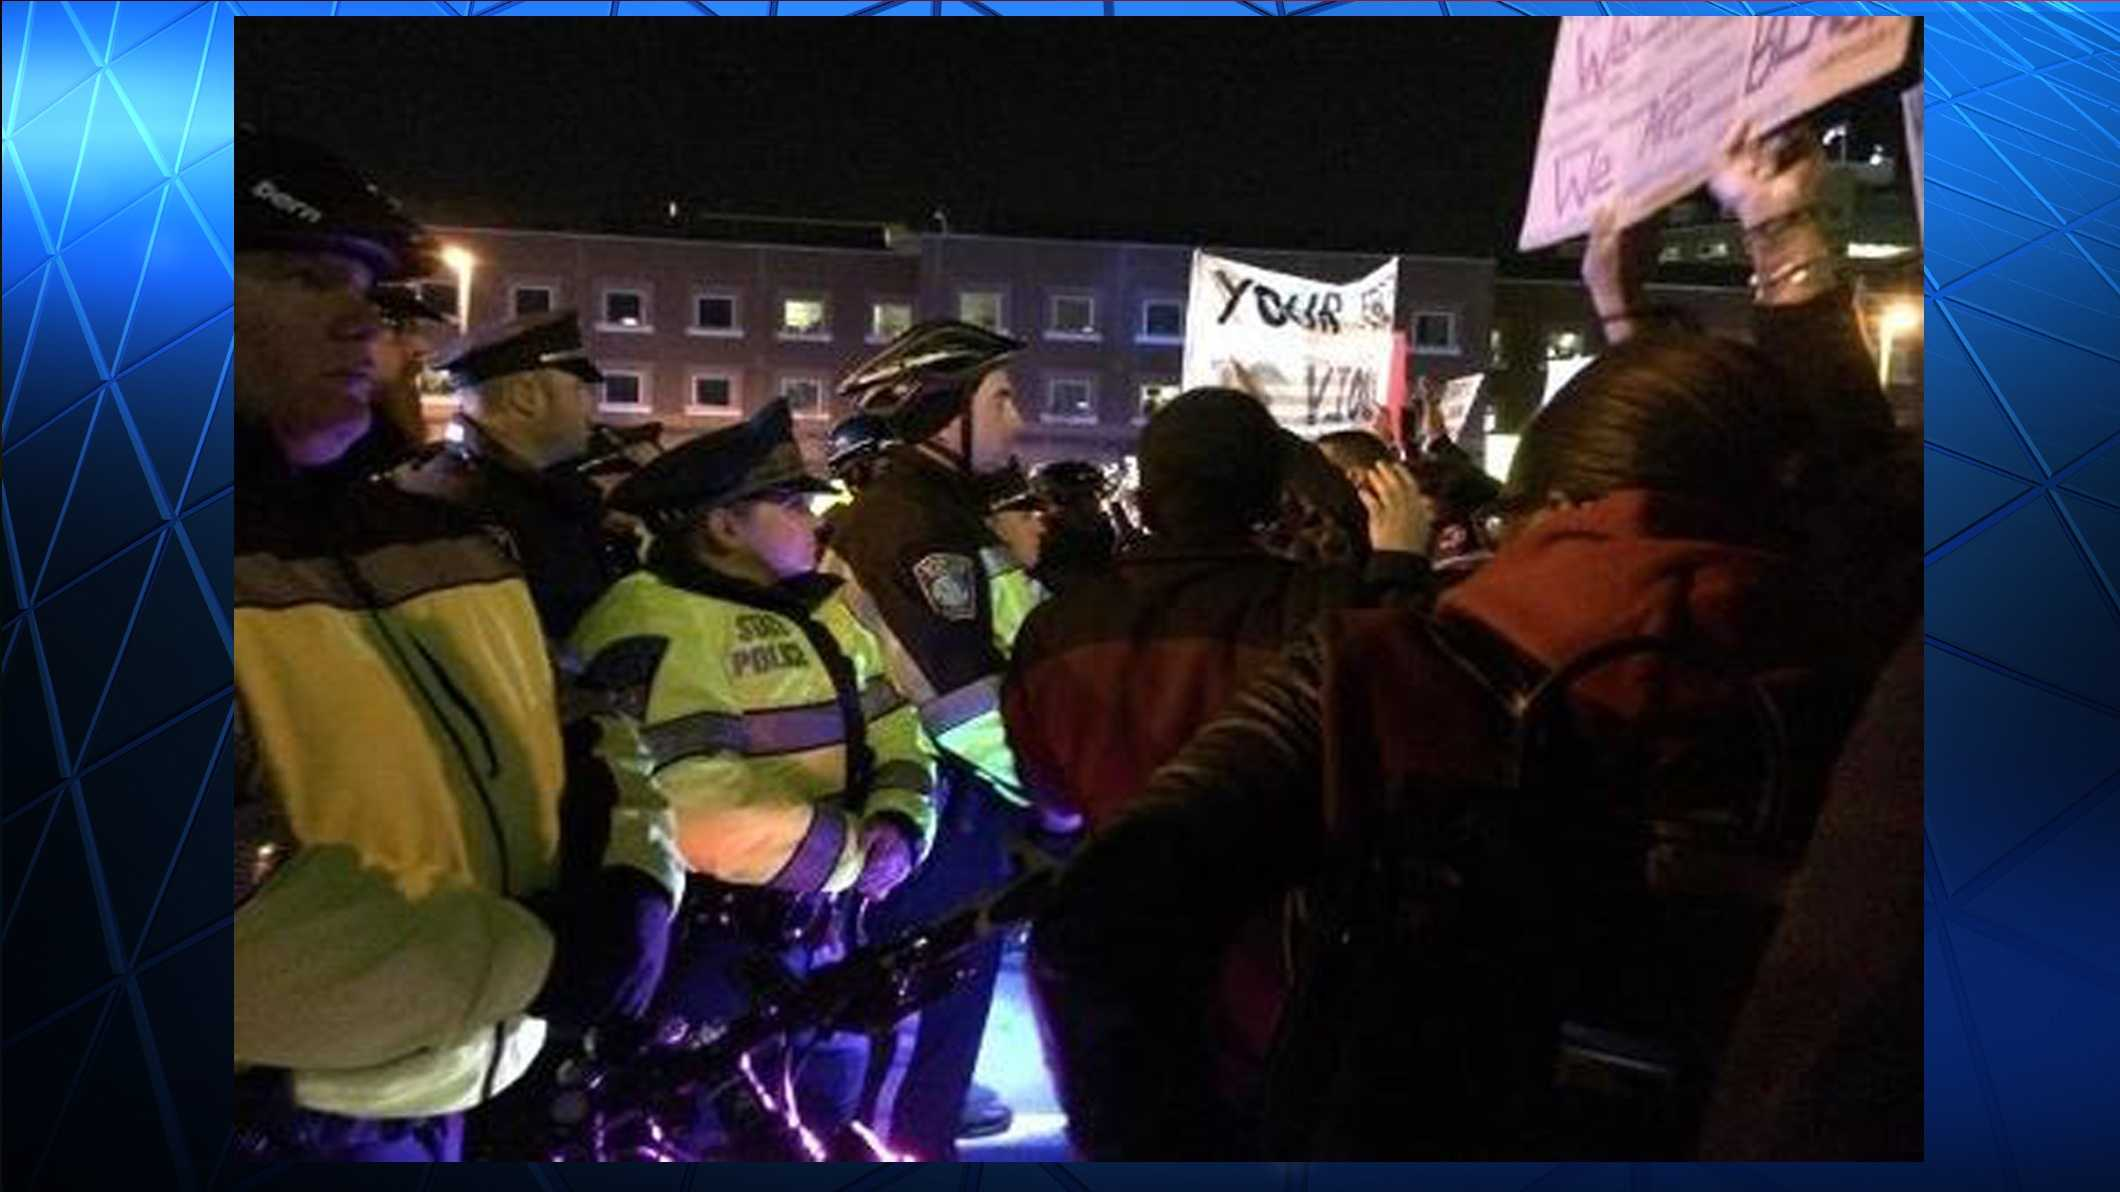 Protests continue nationwide in response to the grand jury decision in Ferguson, Missouri.  This photo shows one in the Boston area late Tuesday.